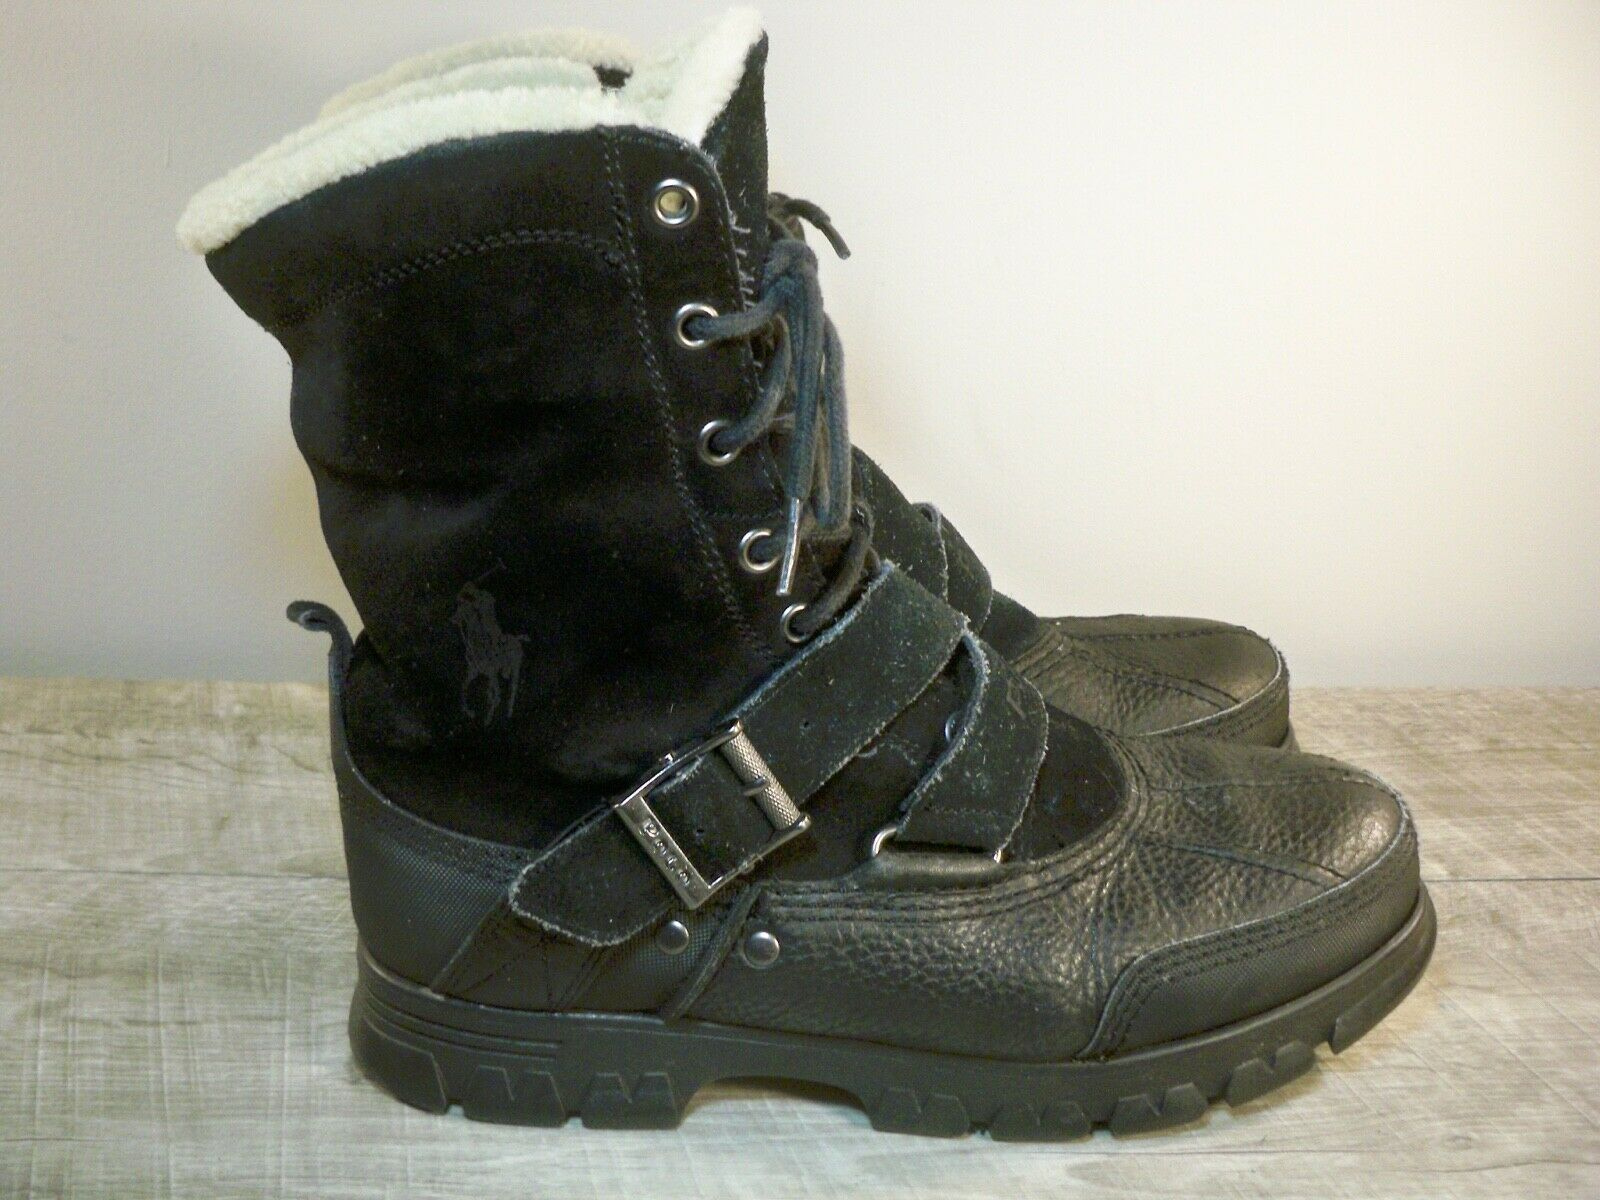 Polo Ralph Lauren Tavin Harness Motorcycle Leather & Shearling Men's Boots Sz 9